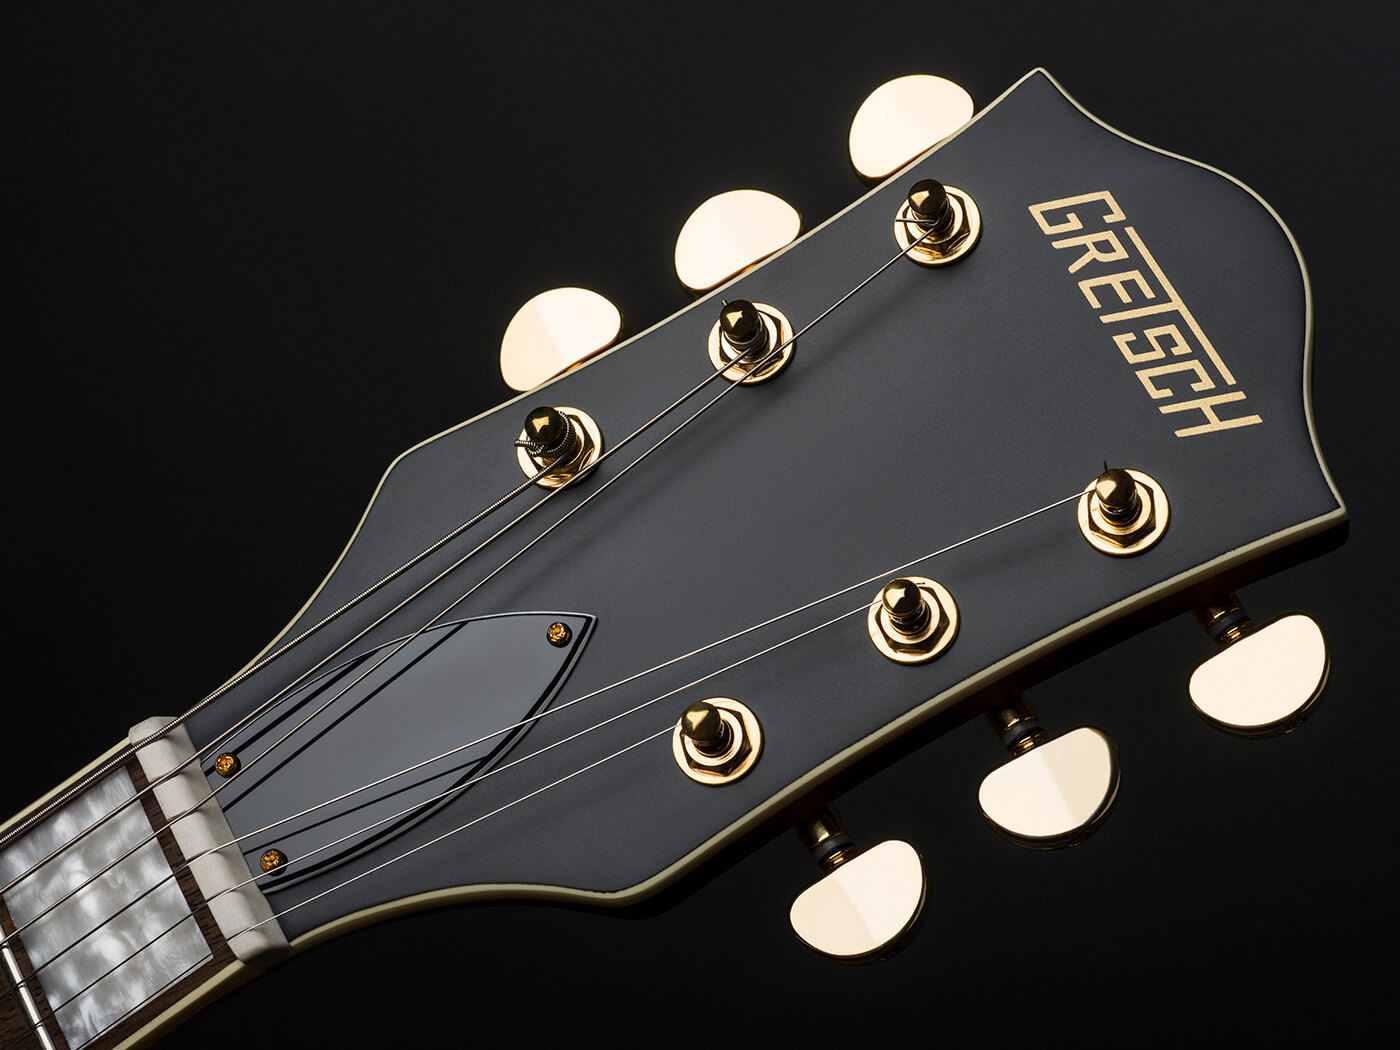 Gretsch-G2622TG Limited Edition Streamliner (Headstock)